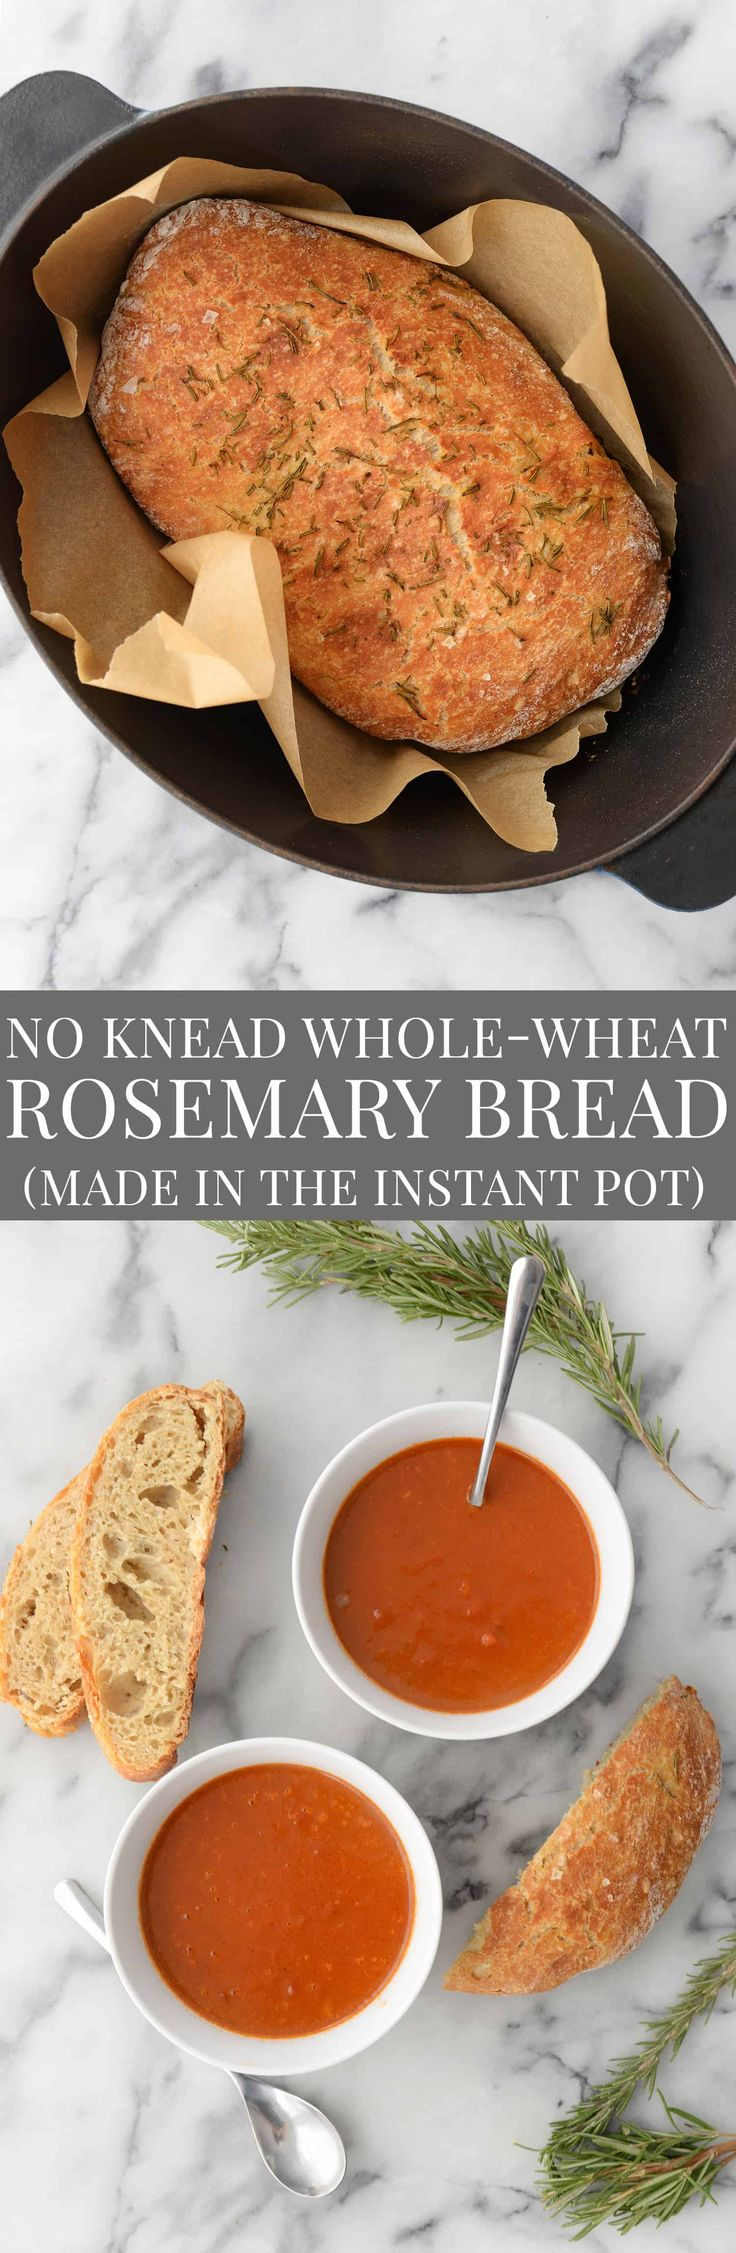 No Knead Whole Wheat Rosemary Bread made in the Instant Pot